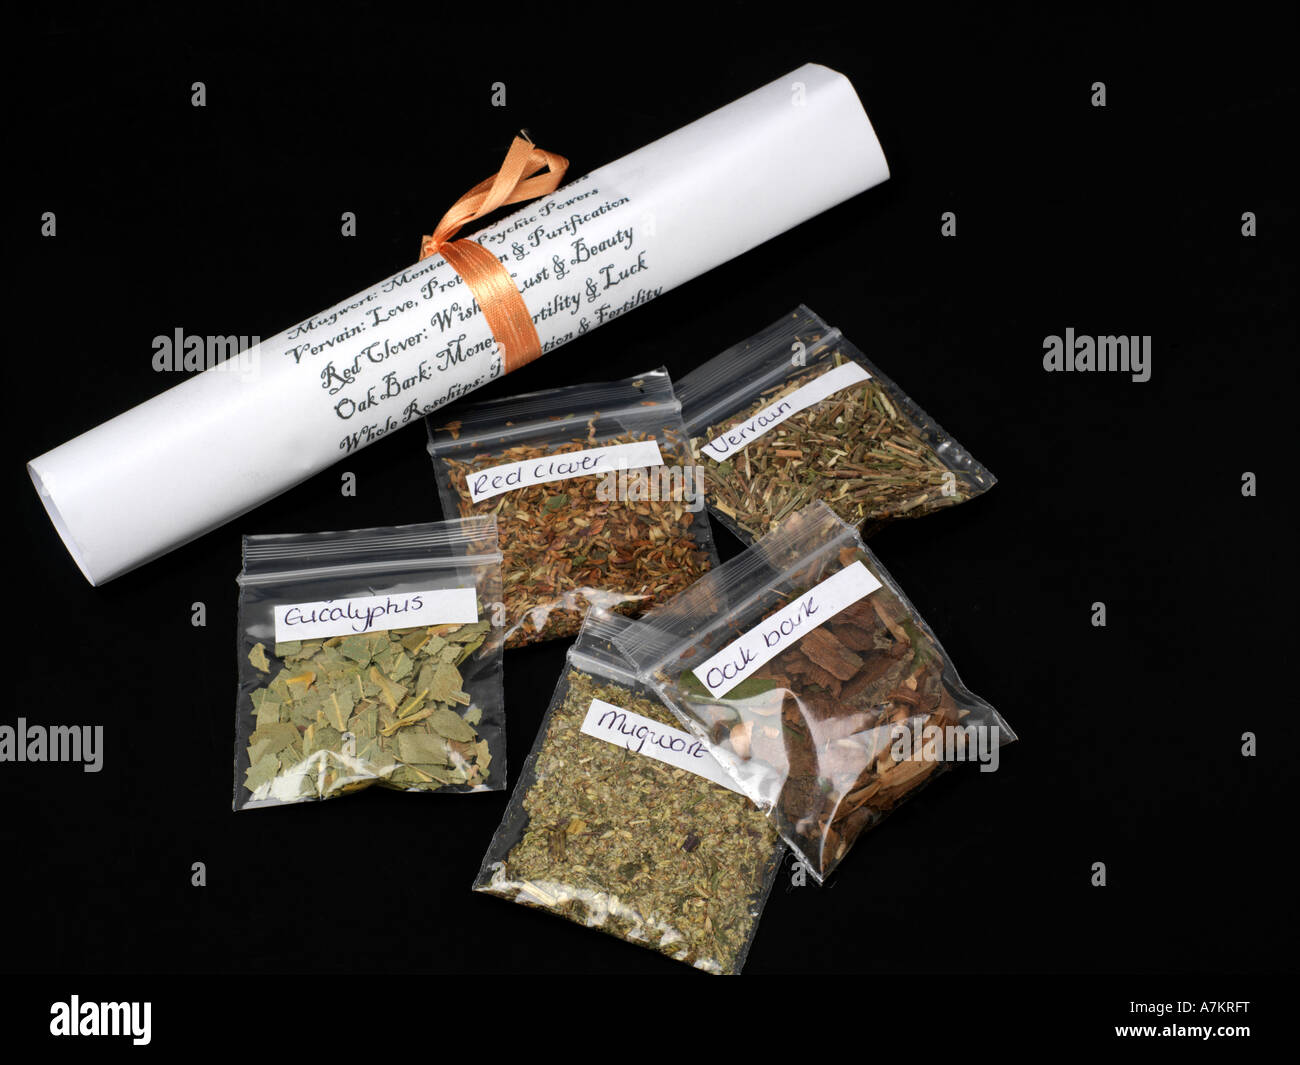 Herbal Scroll and Herbs - Stock Image